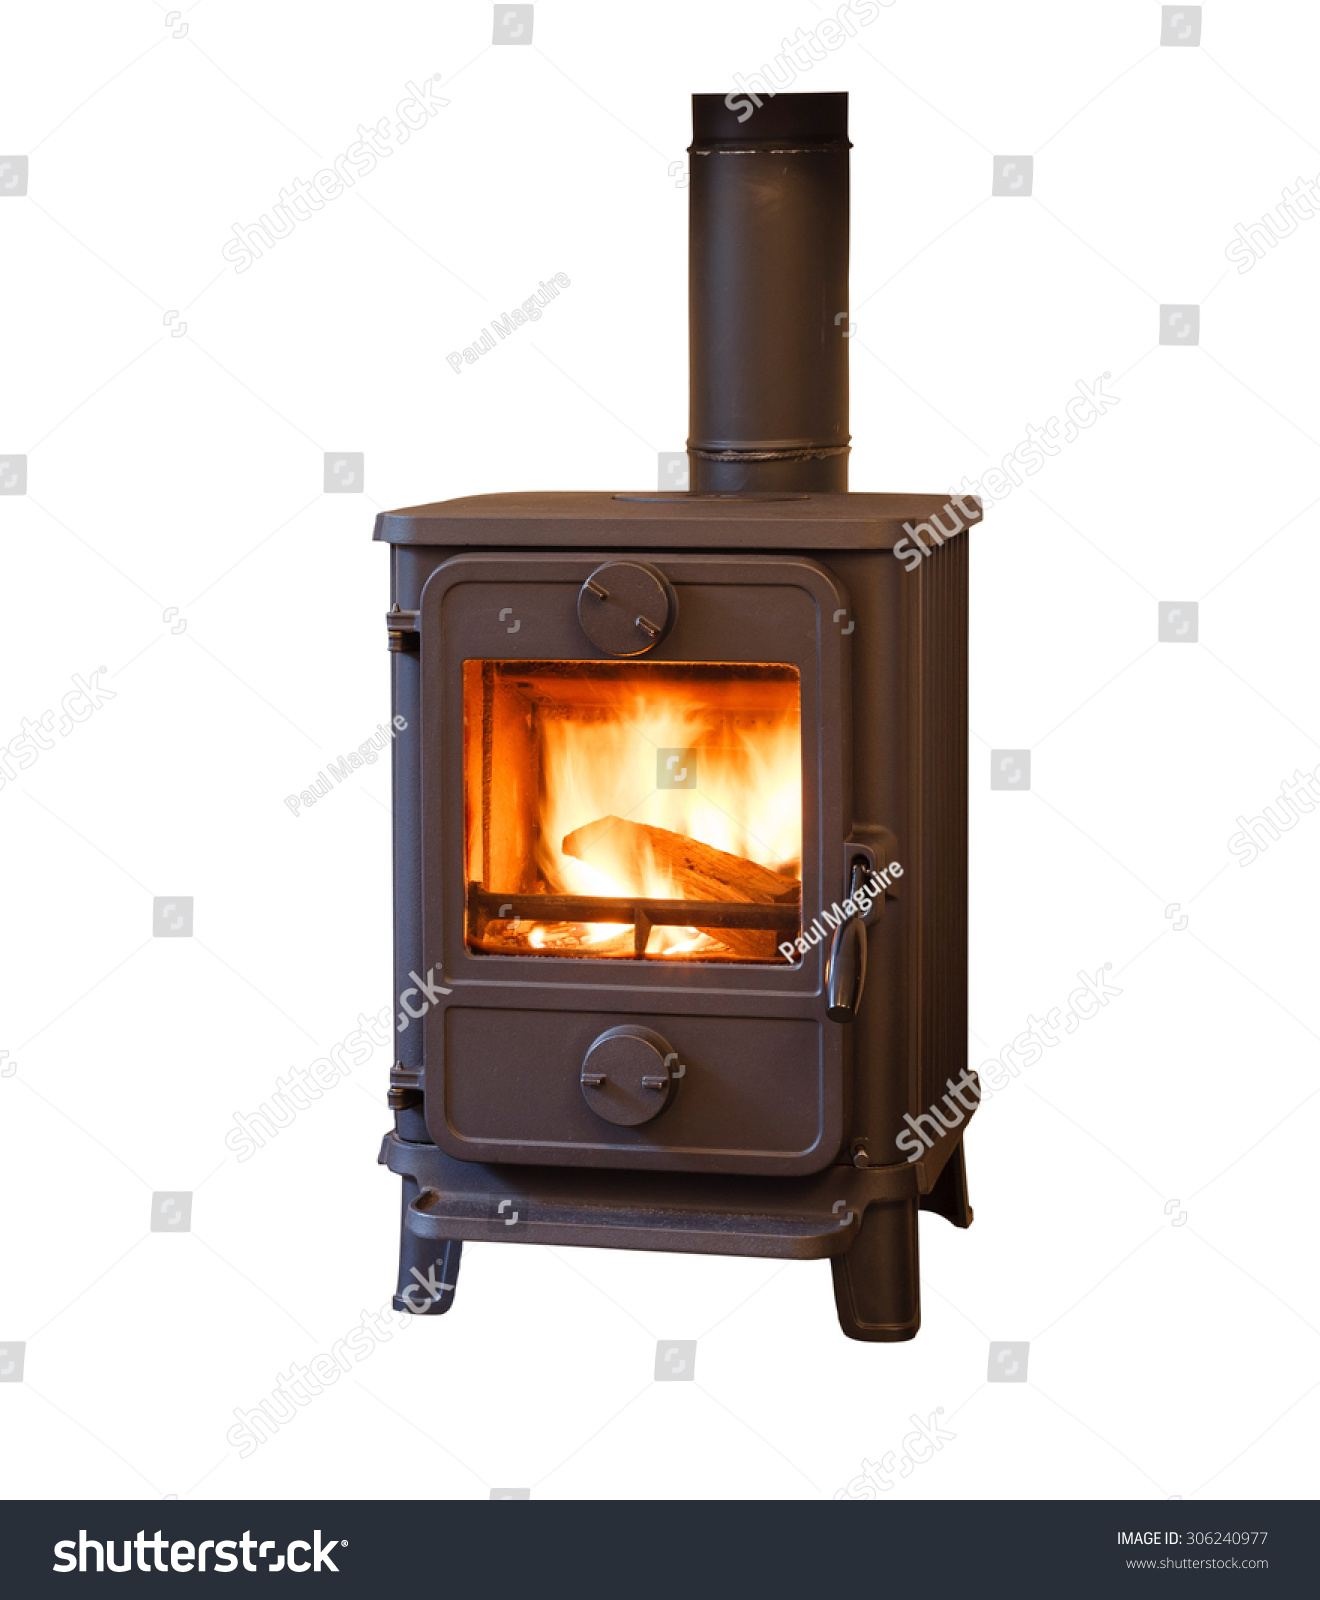 Wood burning stove stock photo shutterstock